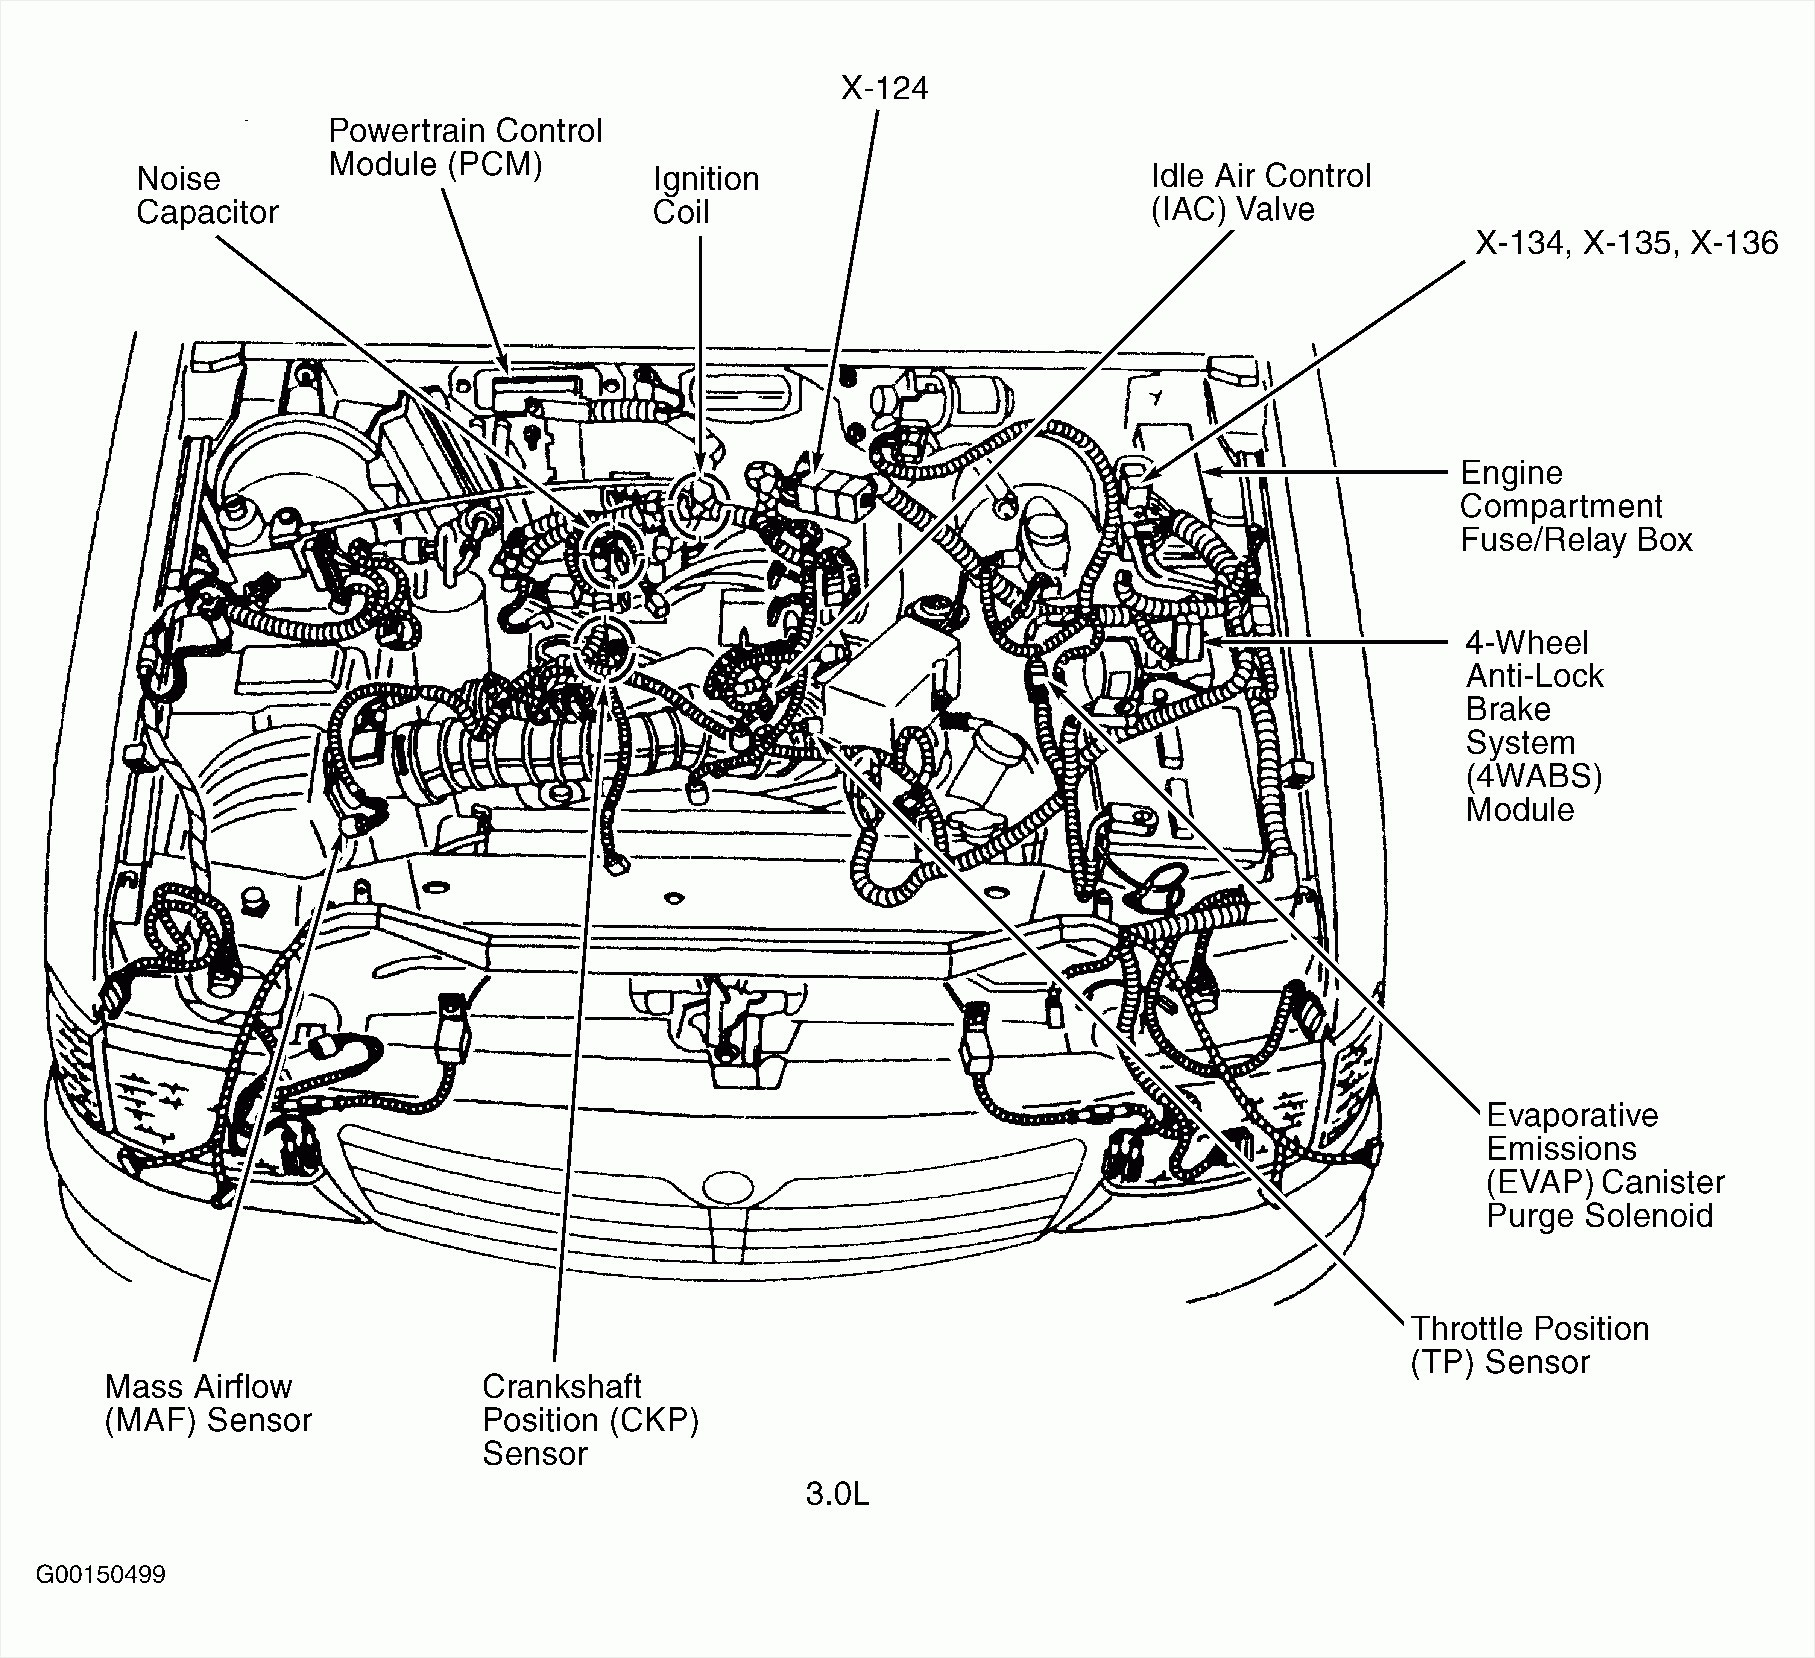 2001 vw jetta engine diagram wiring diagram latest2011 vw jetta gas engine diagram wiring diagrams update 2001 vw jetta codes 2001 vw jetta engine diagram